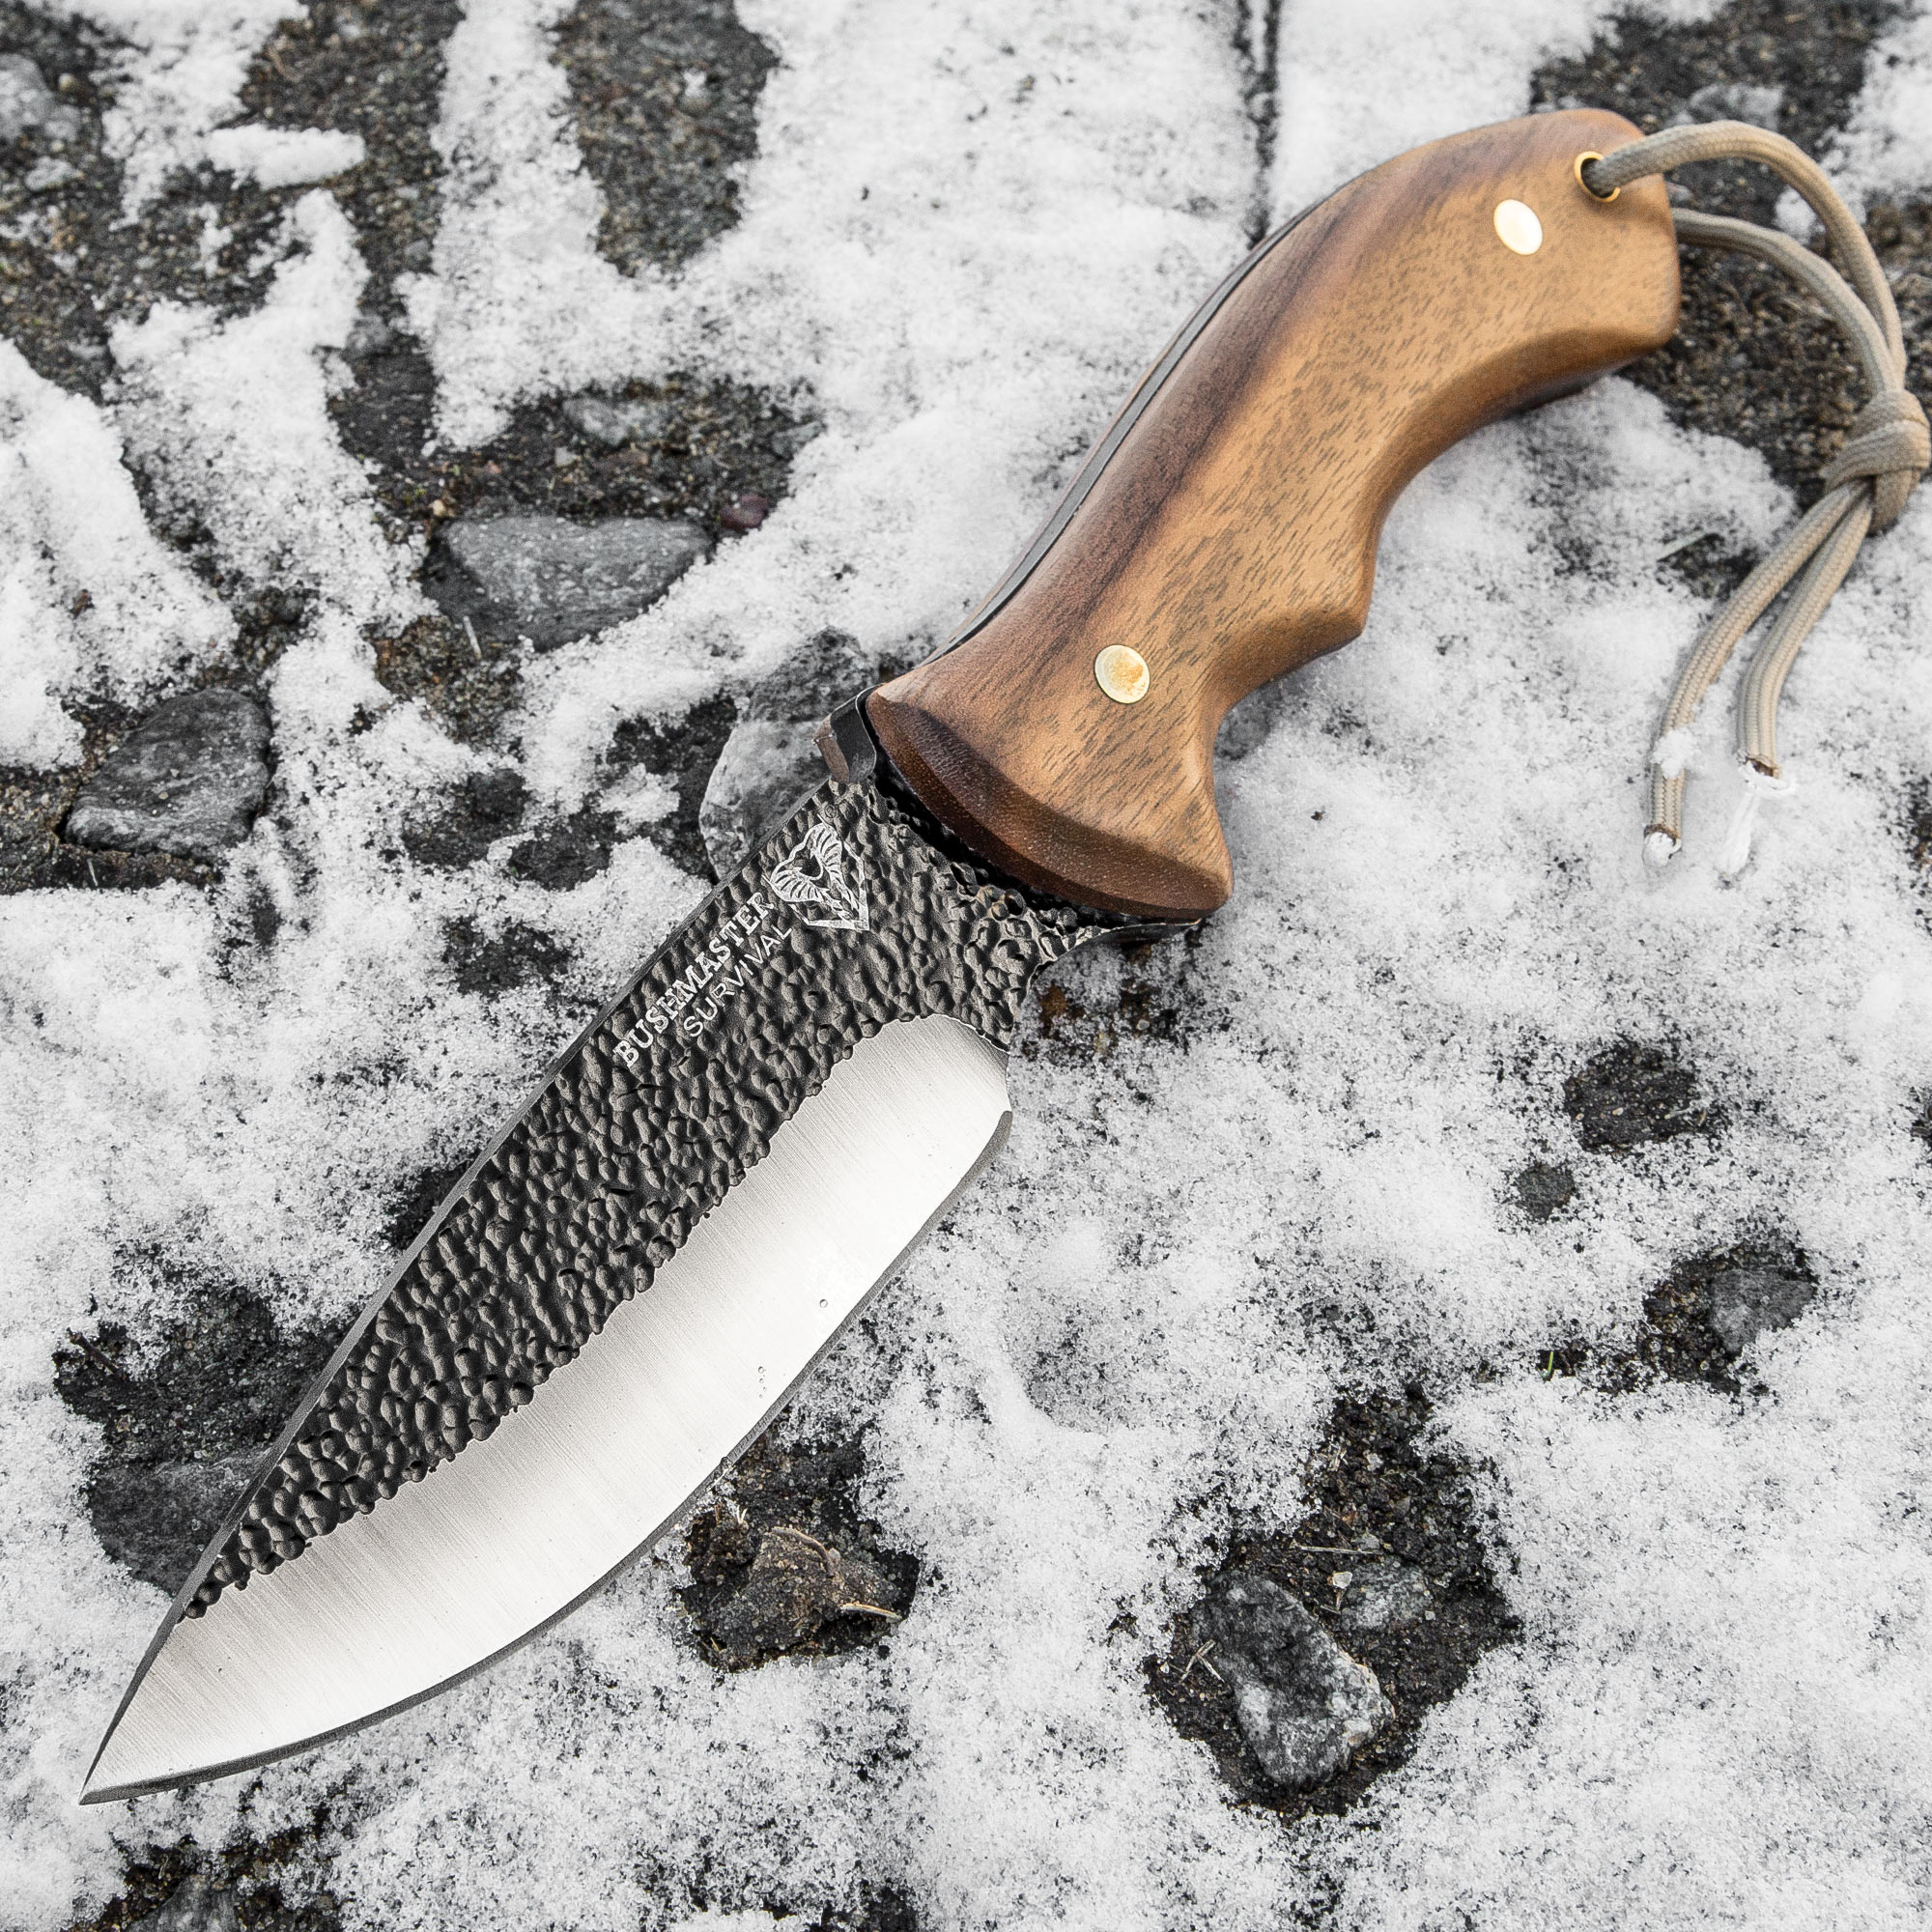 Details about Bushmaster Bushcraft Wood Hunting Survival Bowie Carbon Steel  Fixed Blade Knife